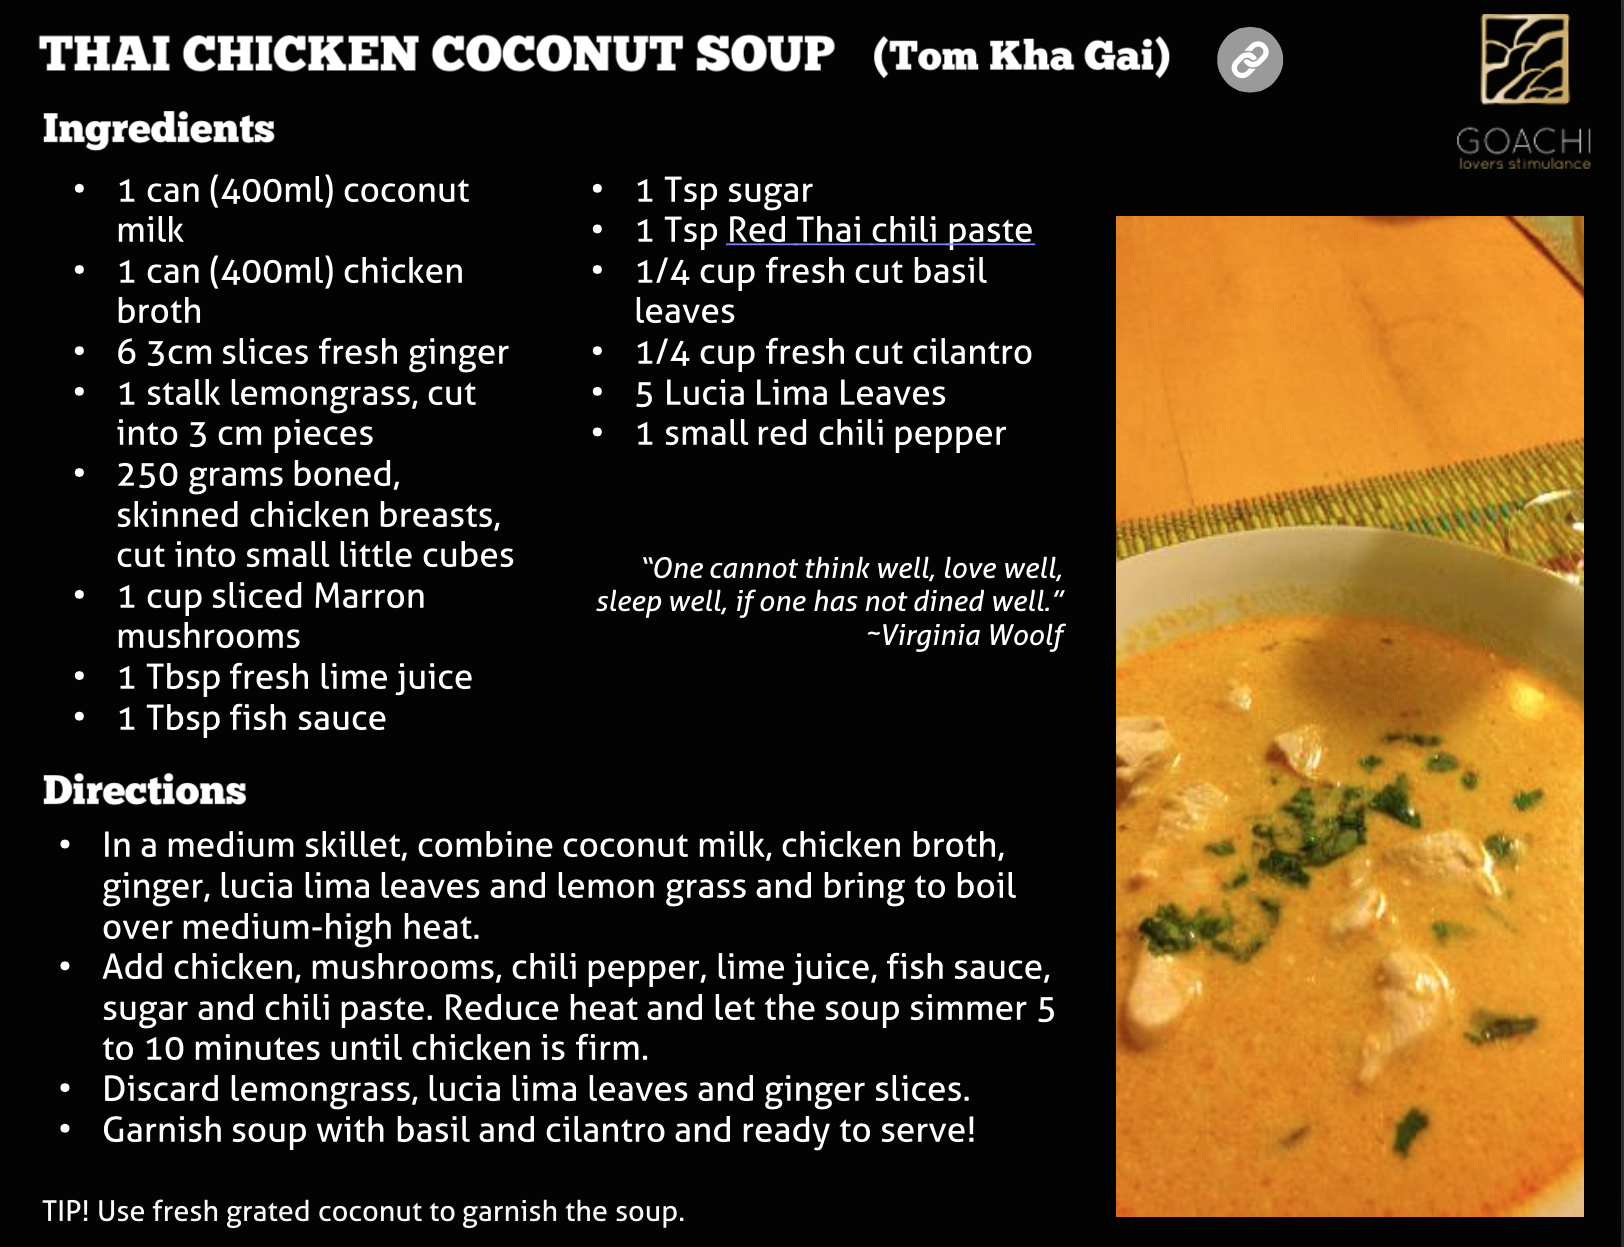 Thai Chicken Coconut Soup ♡☆ ♡ VALENTINES OFFER: https://goachi.leadpages.co/valentinesday/